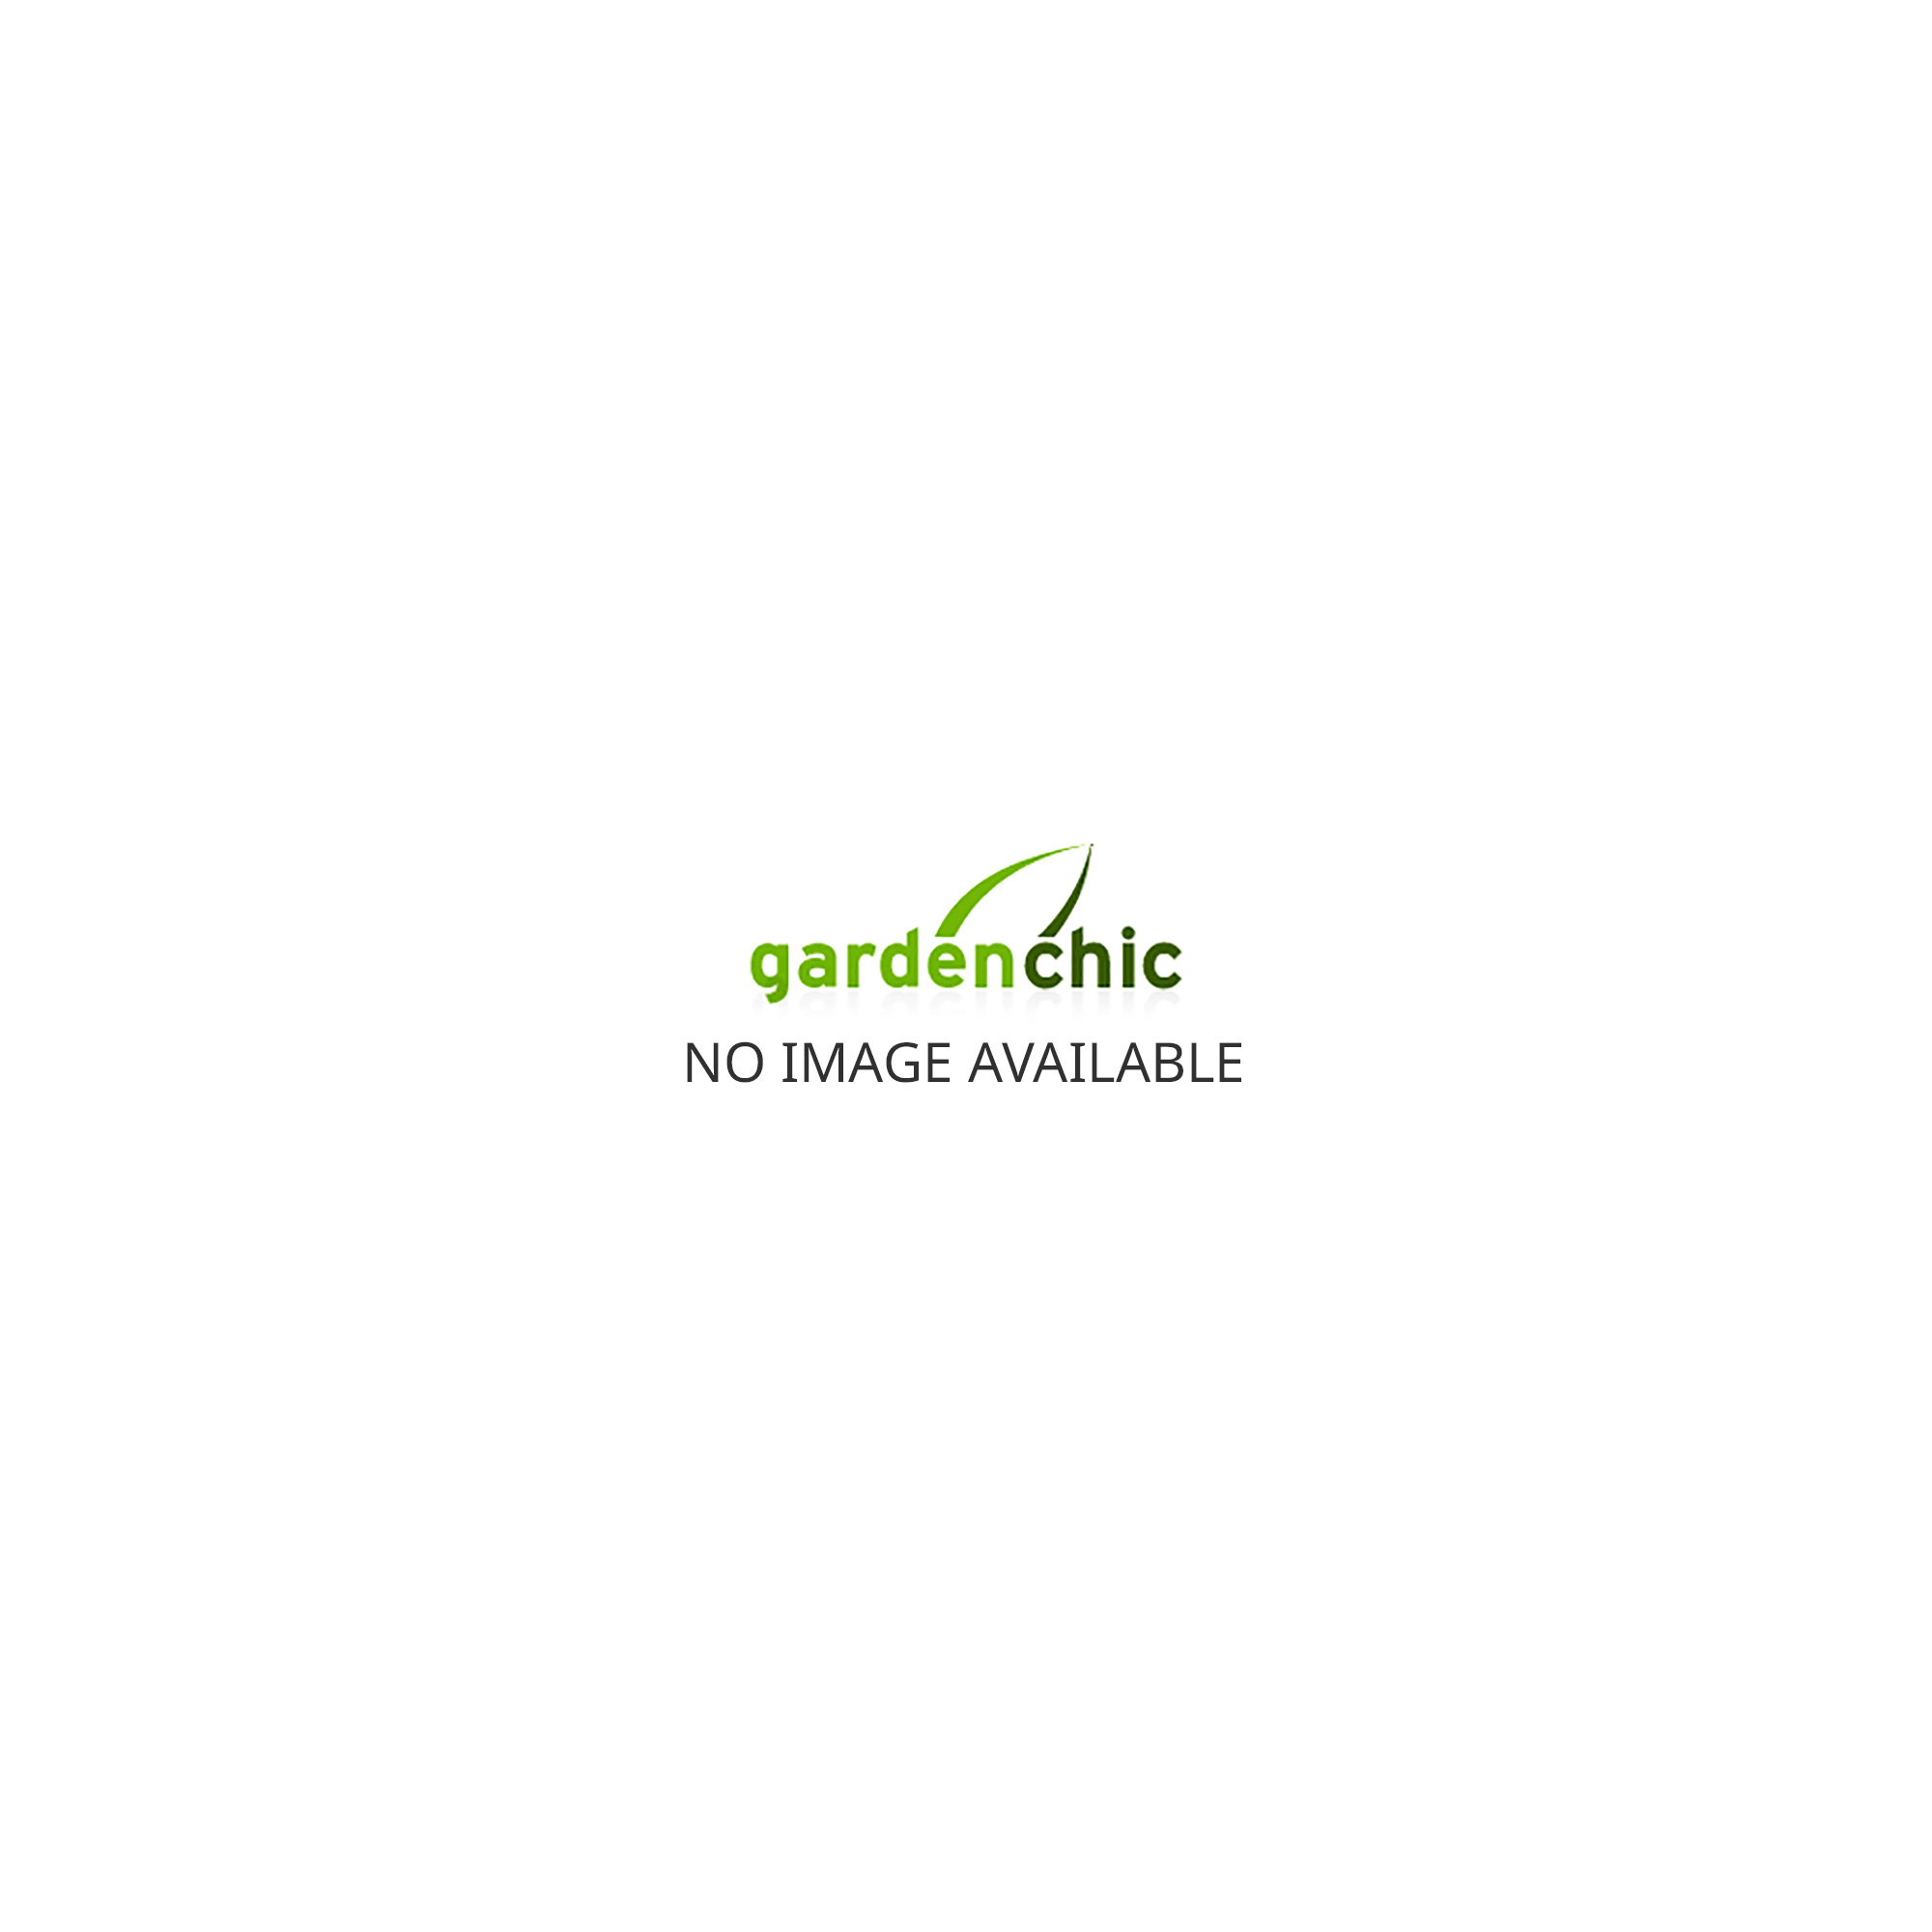 Vitavia Apollo 3800 Greenhouse - Silver FREE Staging until APRIL 2018